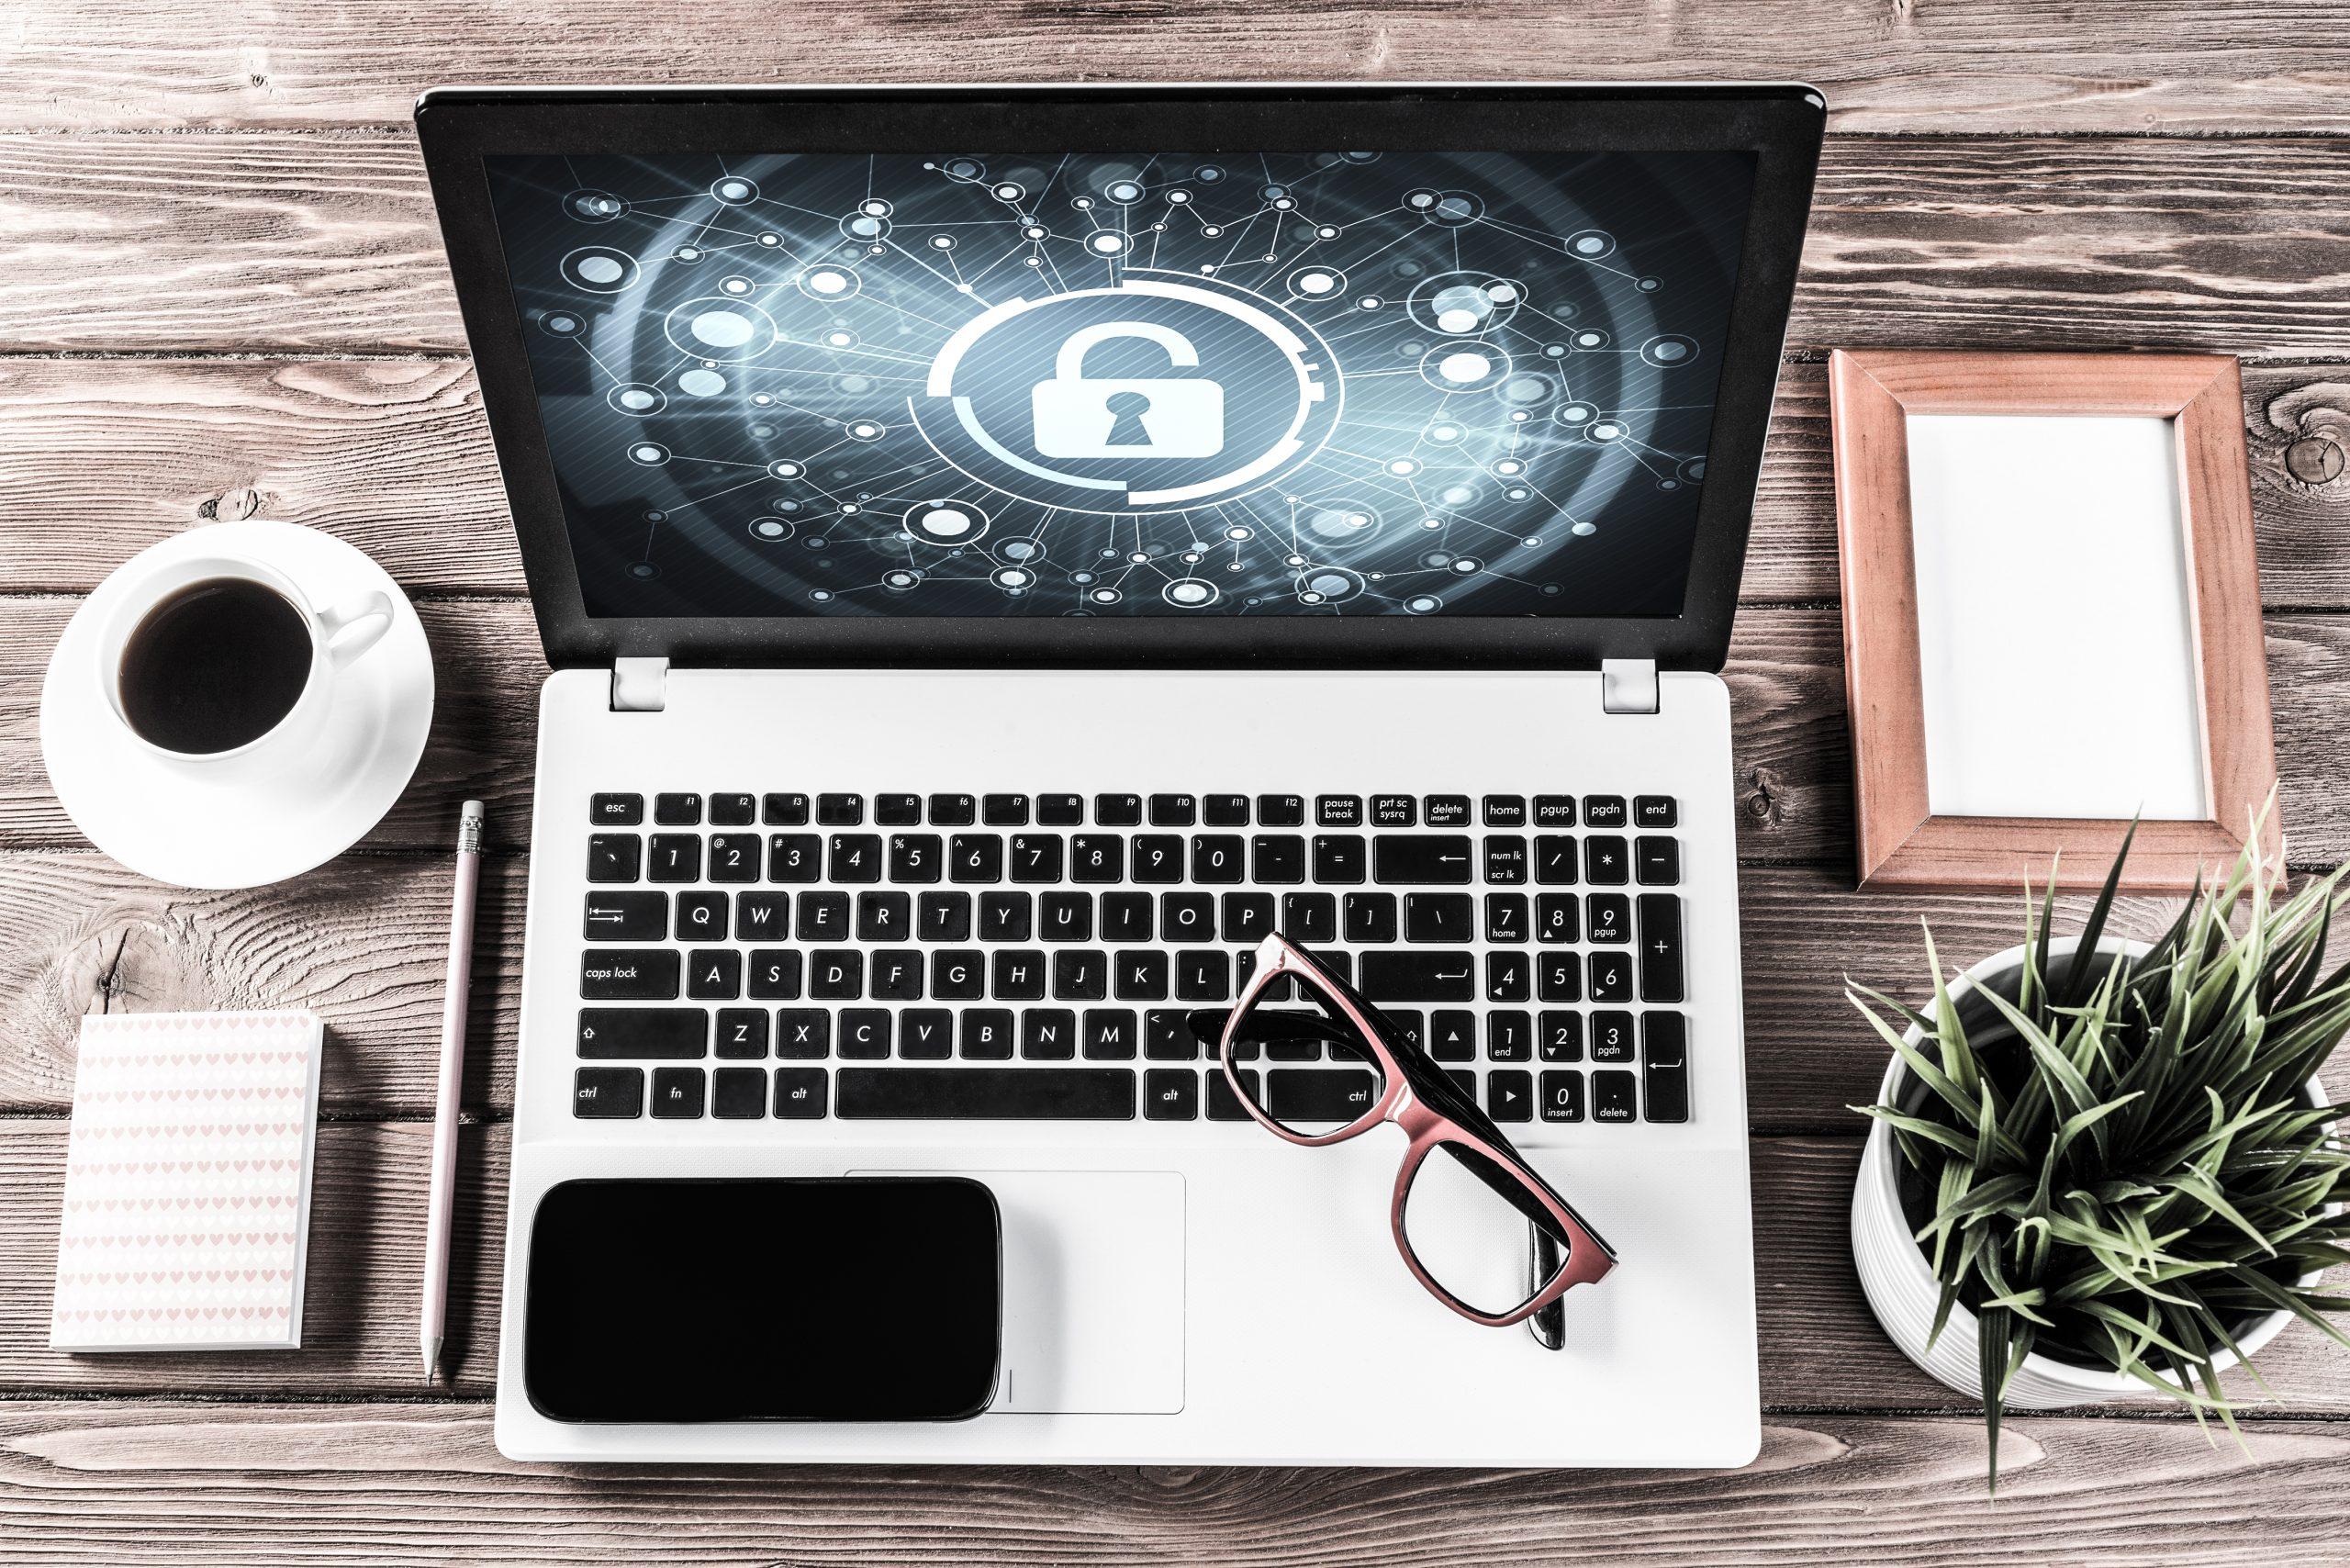 Secure data present within the devices